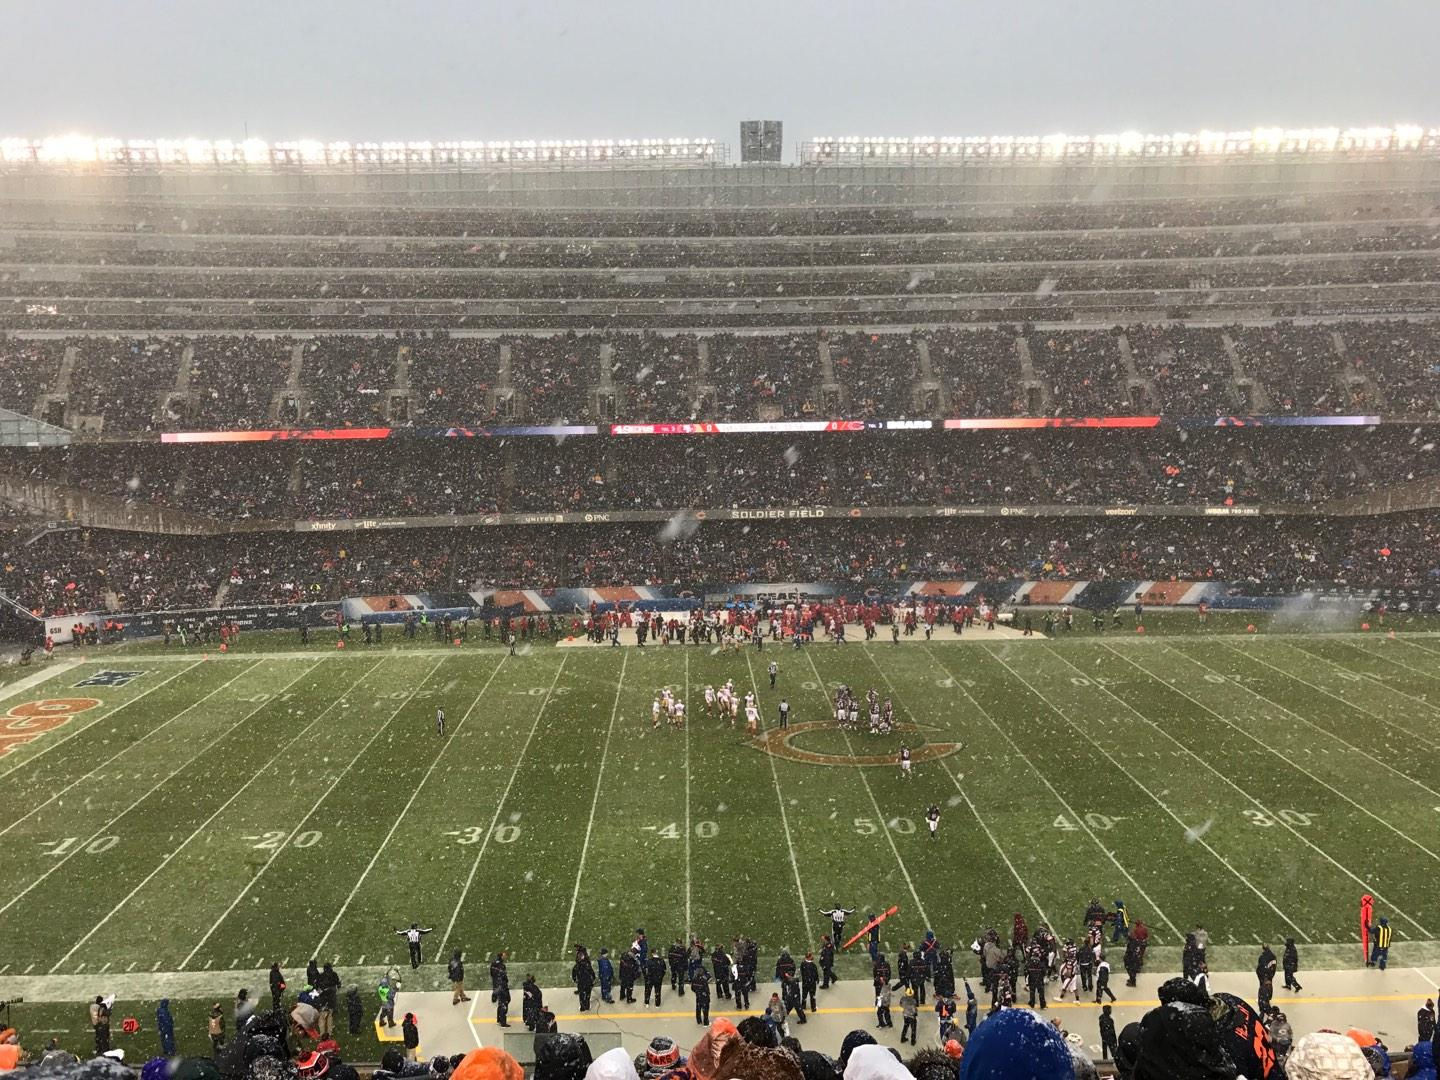 Soldier Field Section 338 Row 14 Seat 4